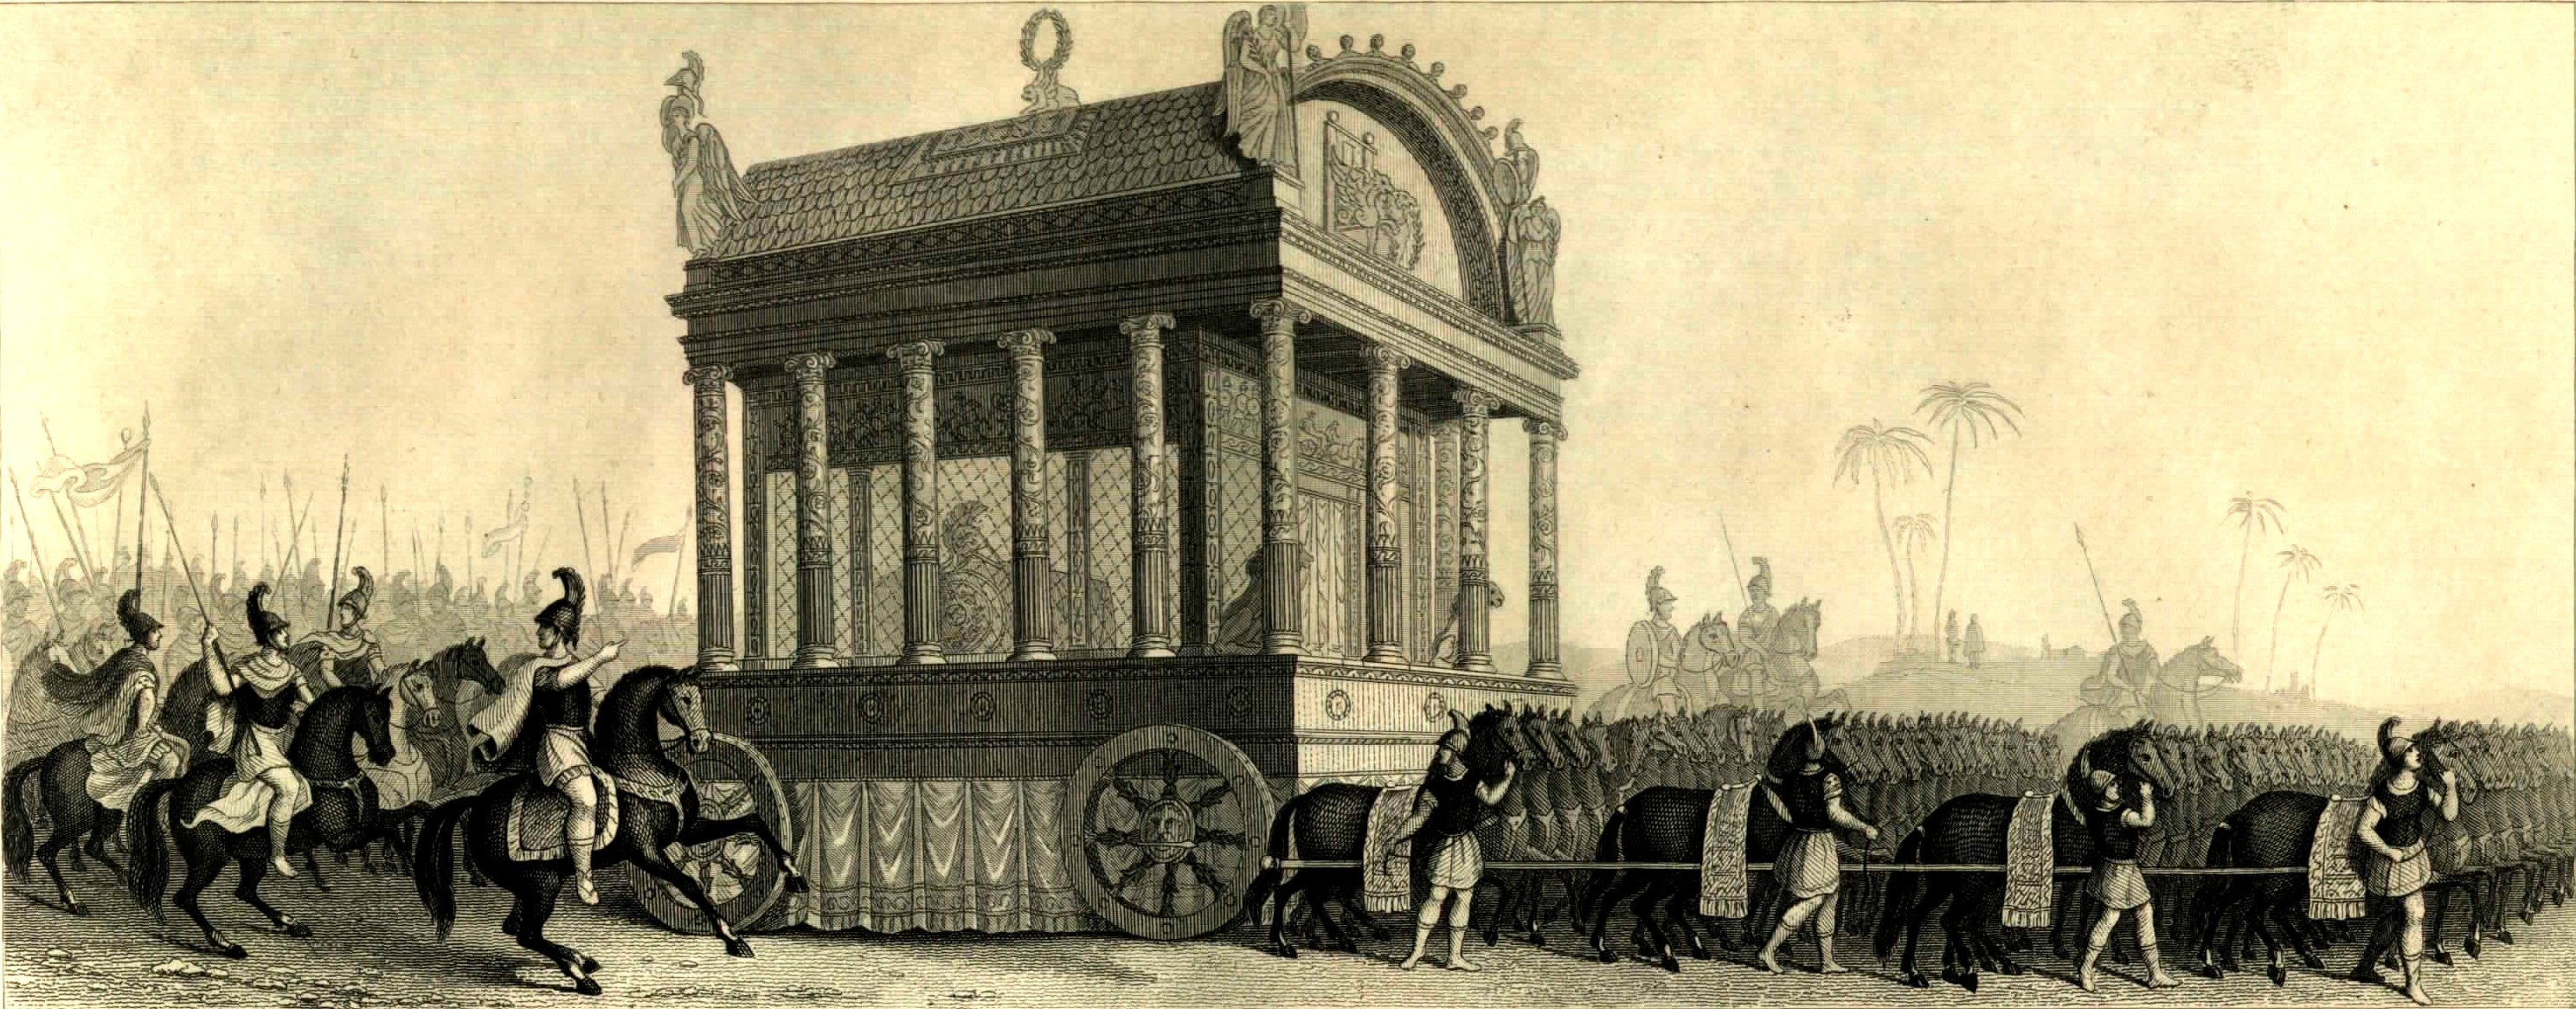 Funeral Procession of Alexander